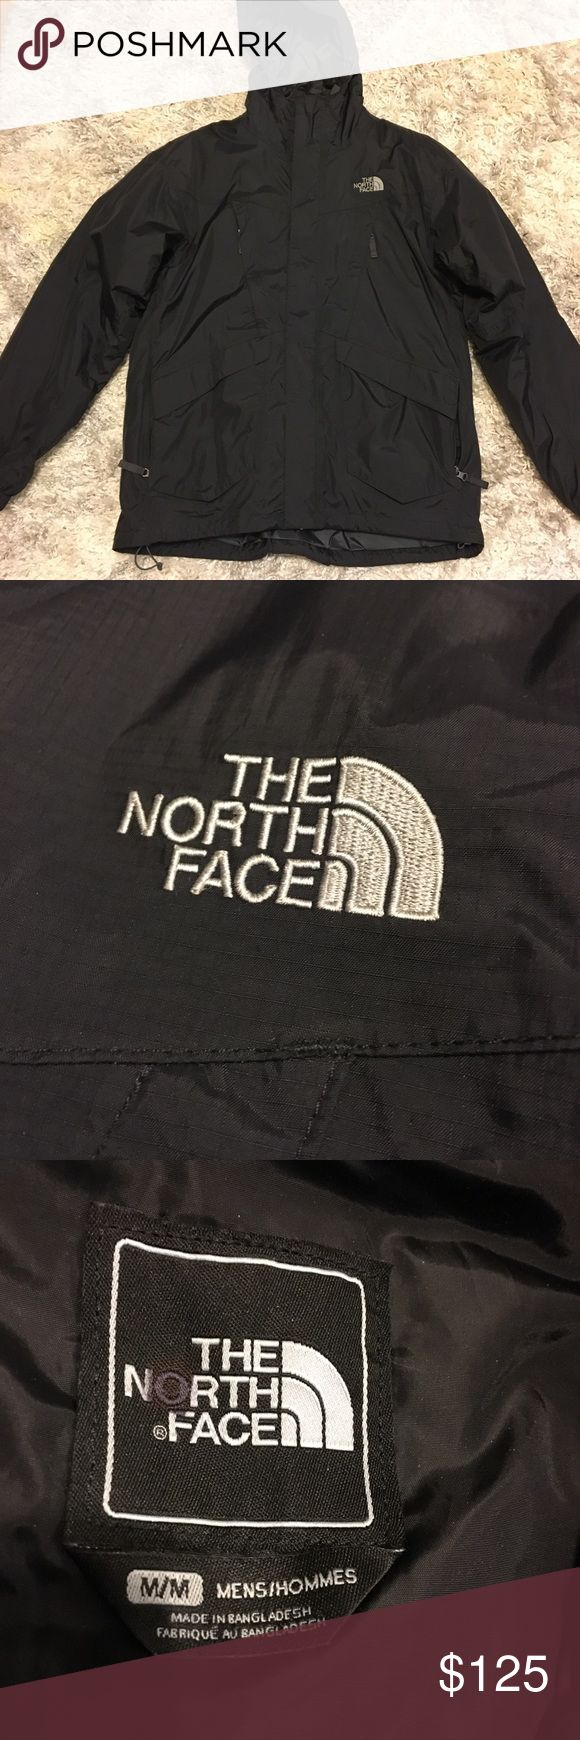 The North Face Black winter jacket. Men's M The North Face Black winter jacket. It's a men's M (fits like women's L/XL). Worn once last season. Inner liner is removable. Warm and authentic-see hologram tag. The North Face Jackets & Coats